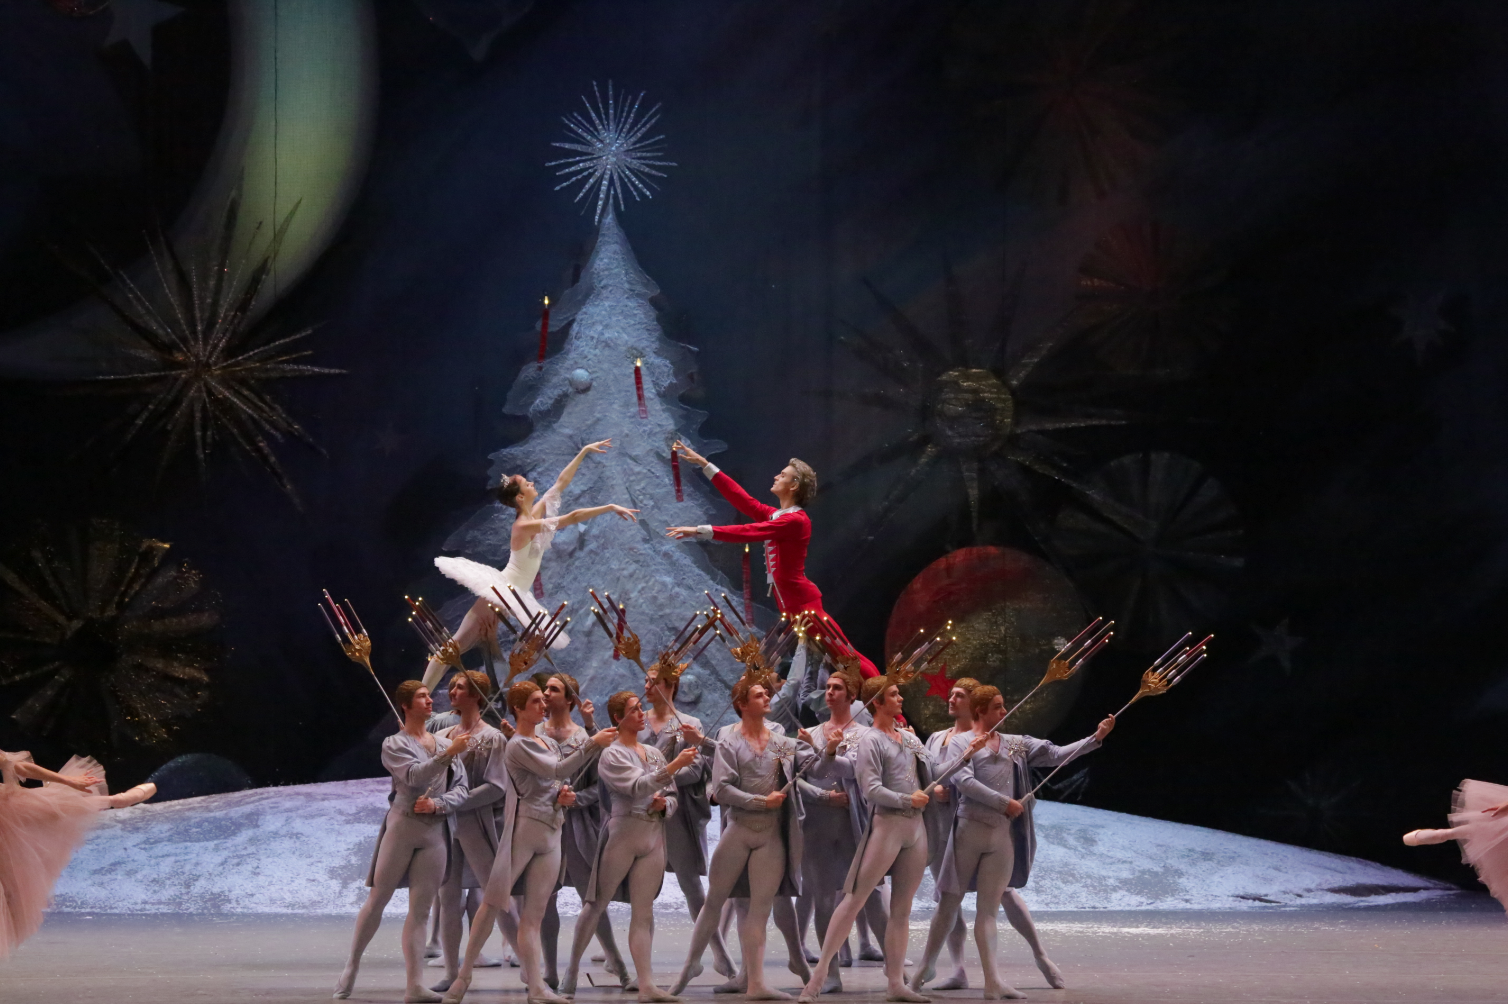 """The Nutcracker"" has become one of the most popular ballets in the world."